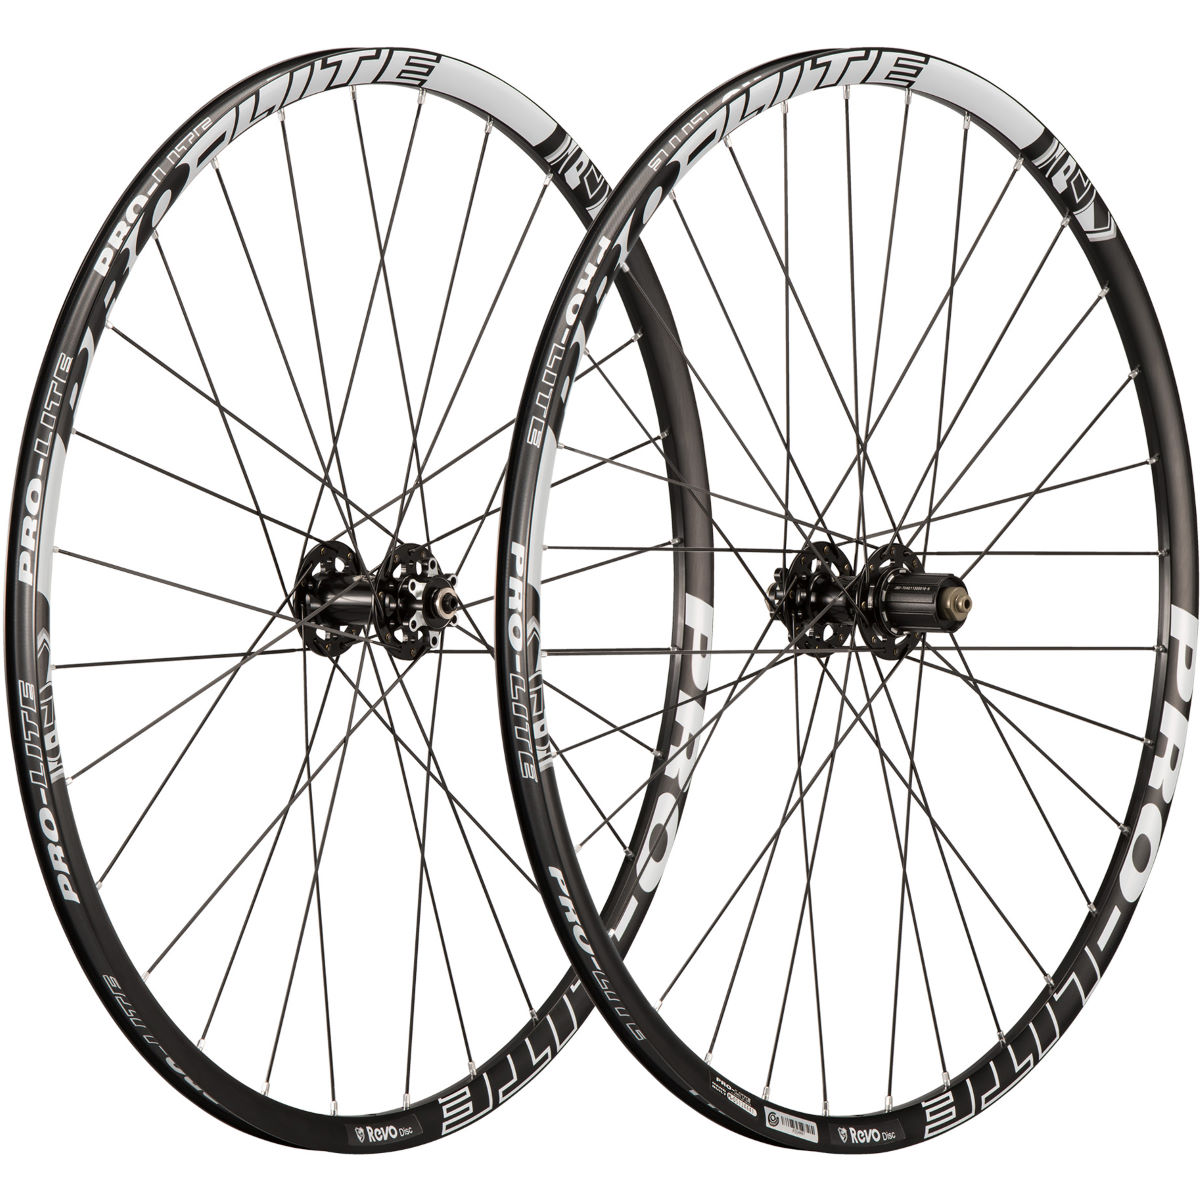 Pro Lite Revo A21 Alloy Road Disc Brake Wheelset   Performance Wheels